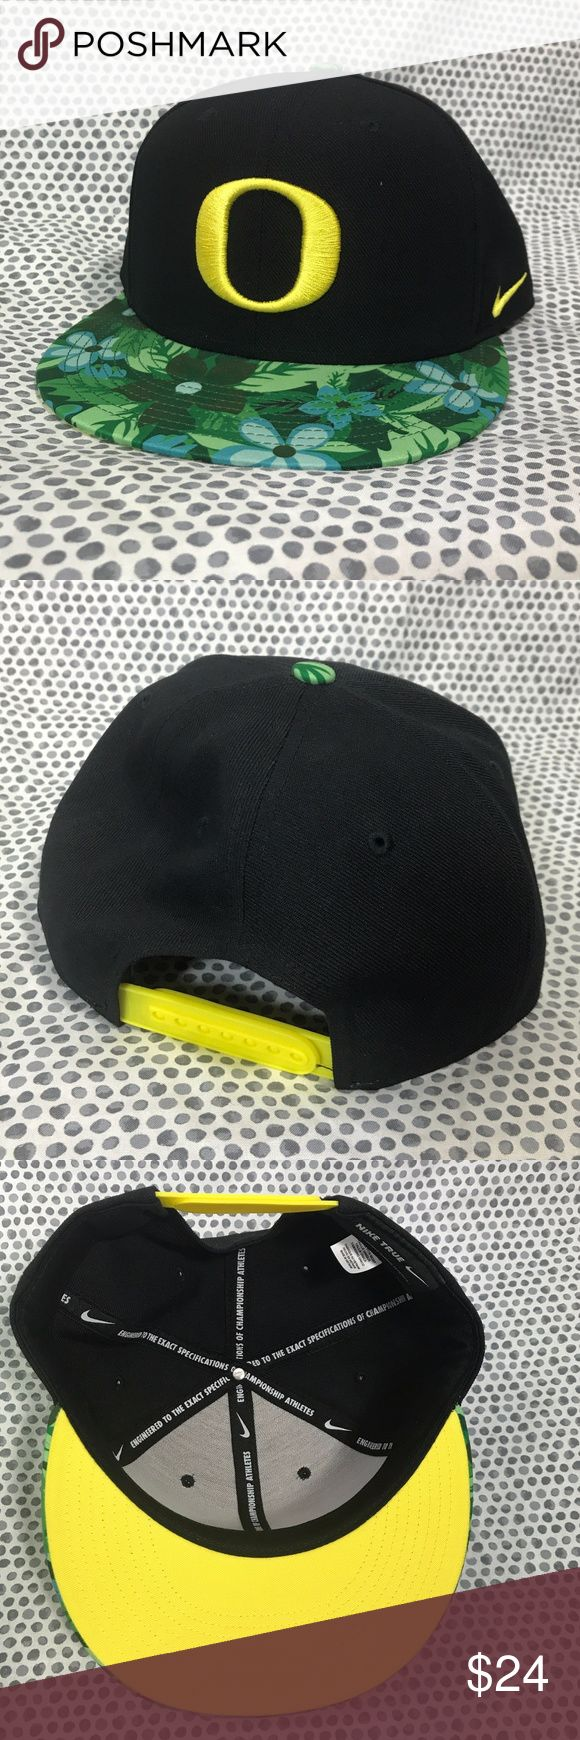 Oregon Ducks Nike Black True Floral Snapback Cap * Oregon Ducks NCAA Nike Black True Floral Bill Snapback Adjustable Baseball Cap * One Size Fits Most  * Made of 100% polyester.  * New without tags and never worn! Nike Accessories Hats